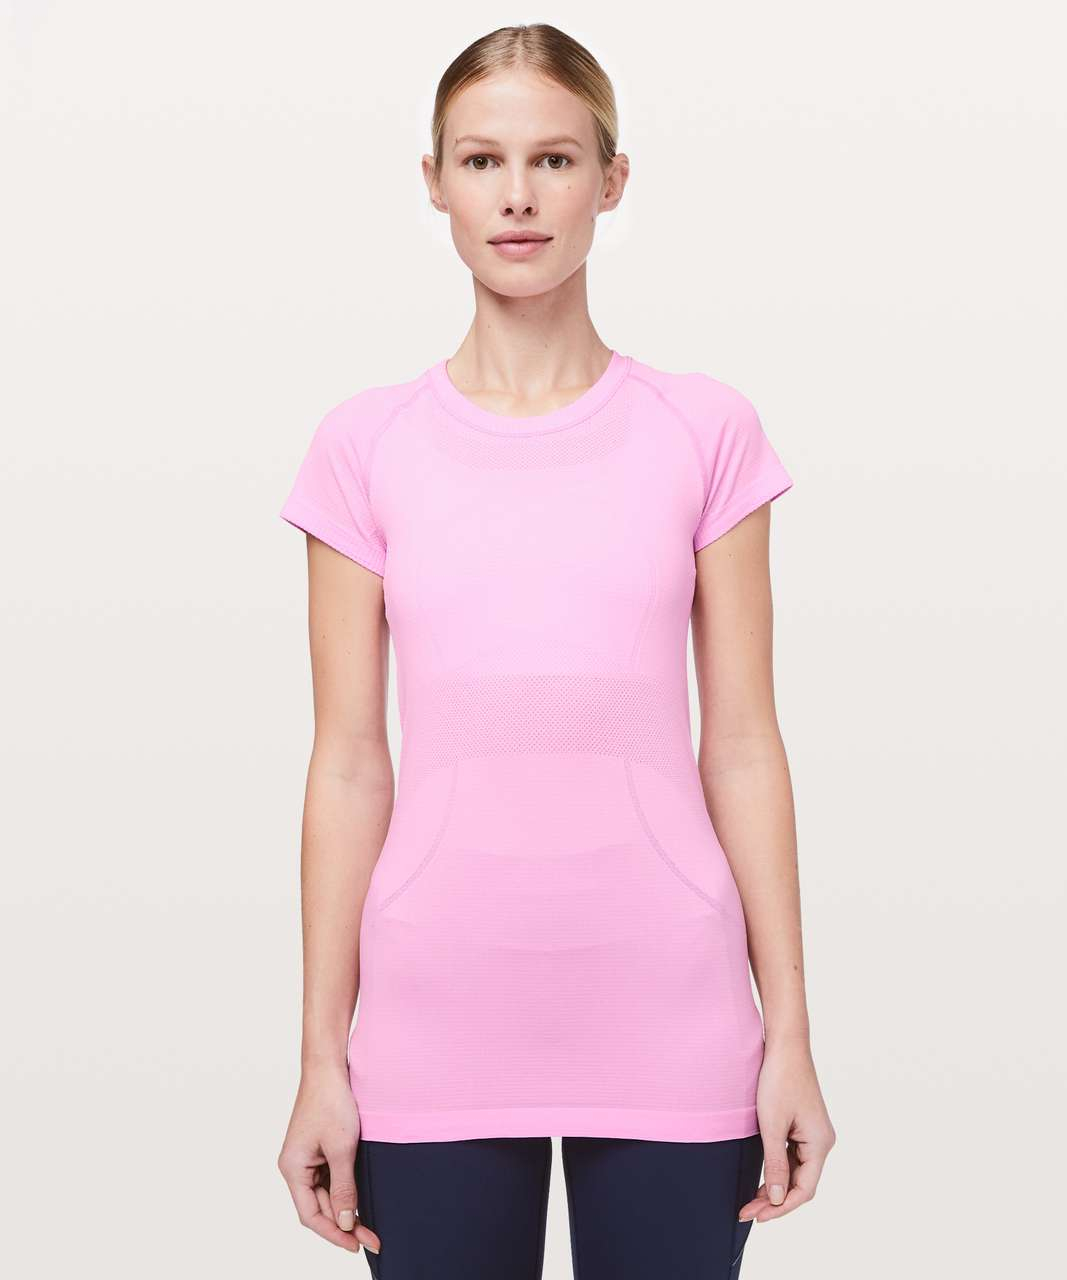 Lululemon Swiftly Tech Short Sleeve Crew - Vintage Pink / White